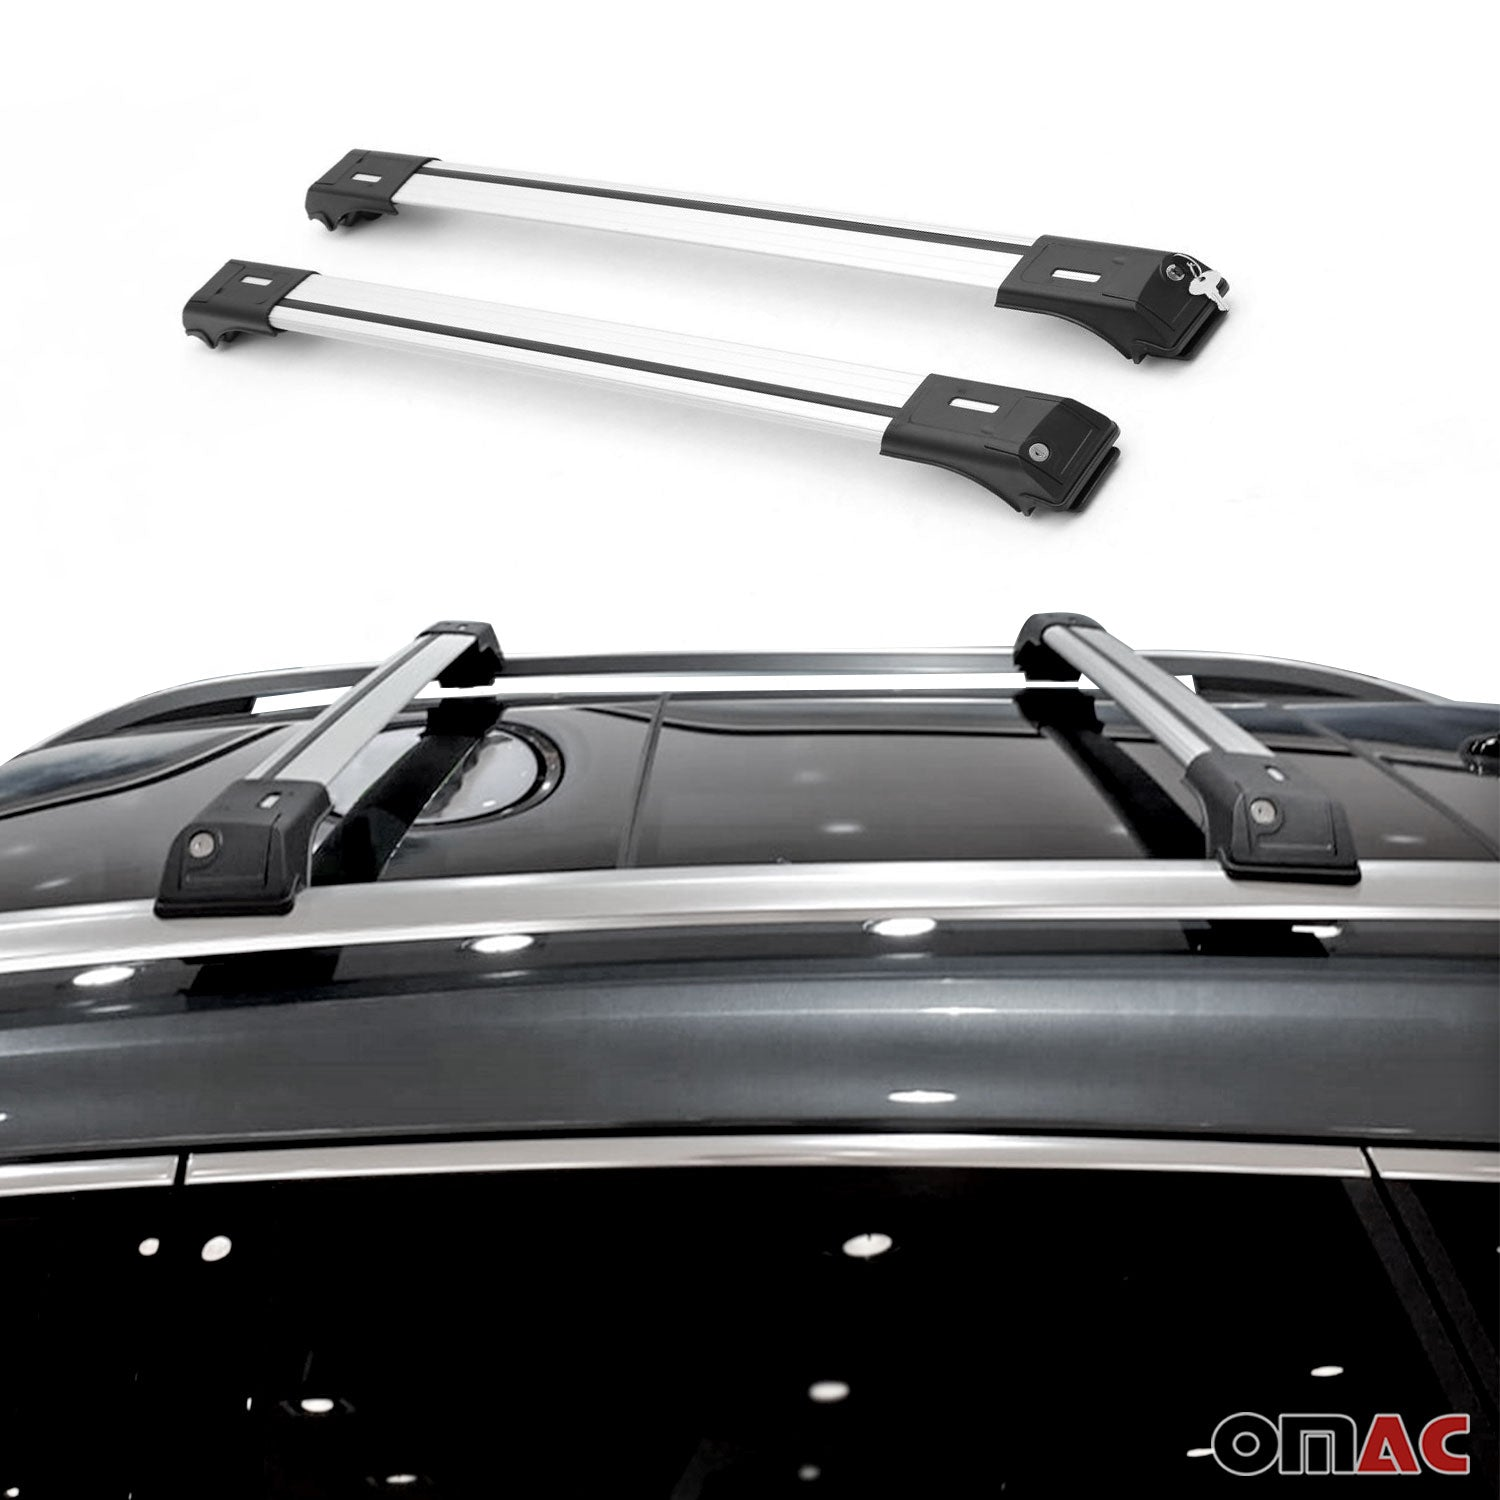 Roof Rack Cross Bars Luggage Carrier Silver for Infiniti FX 2004-2013